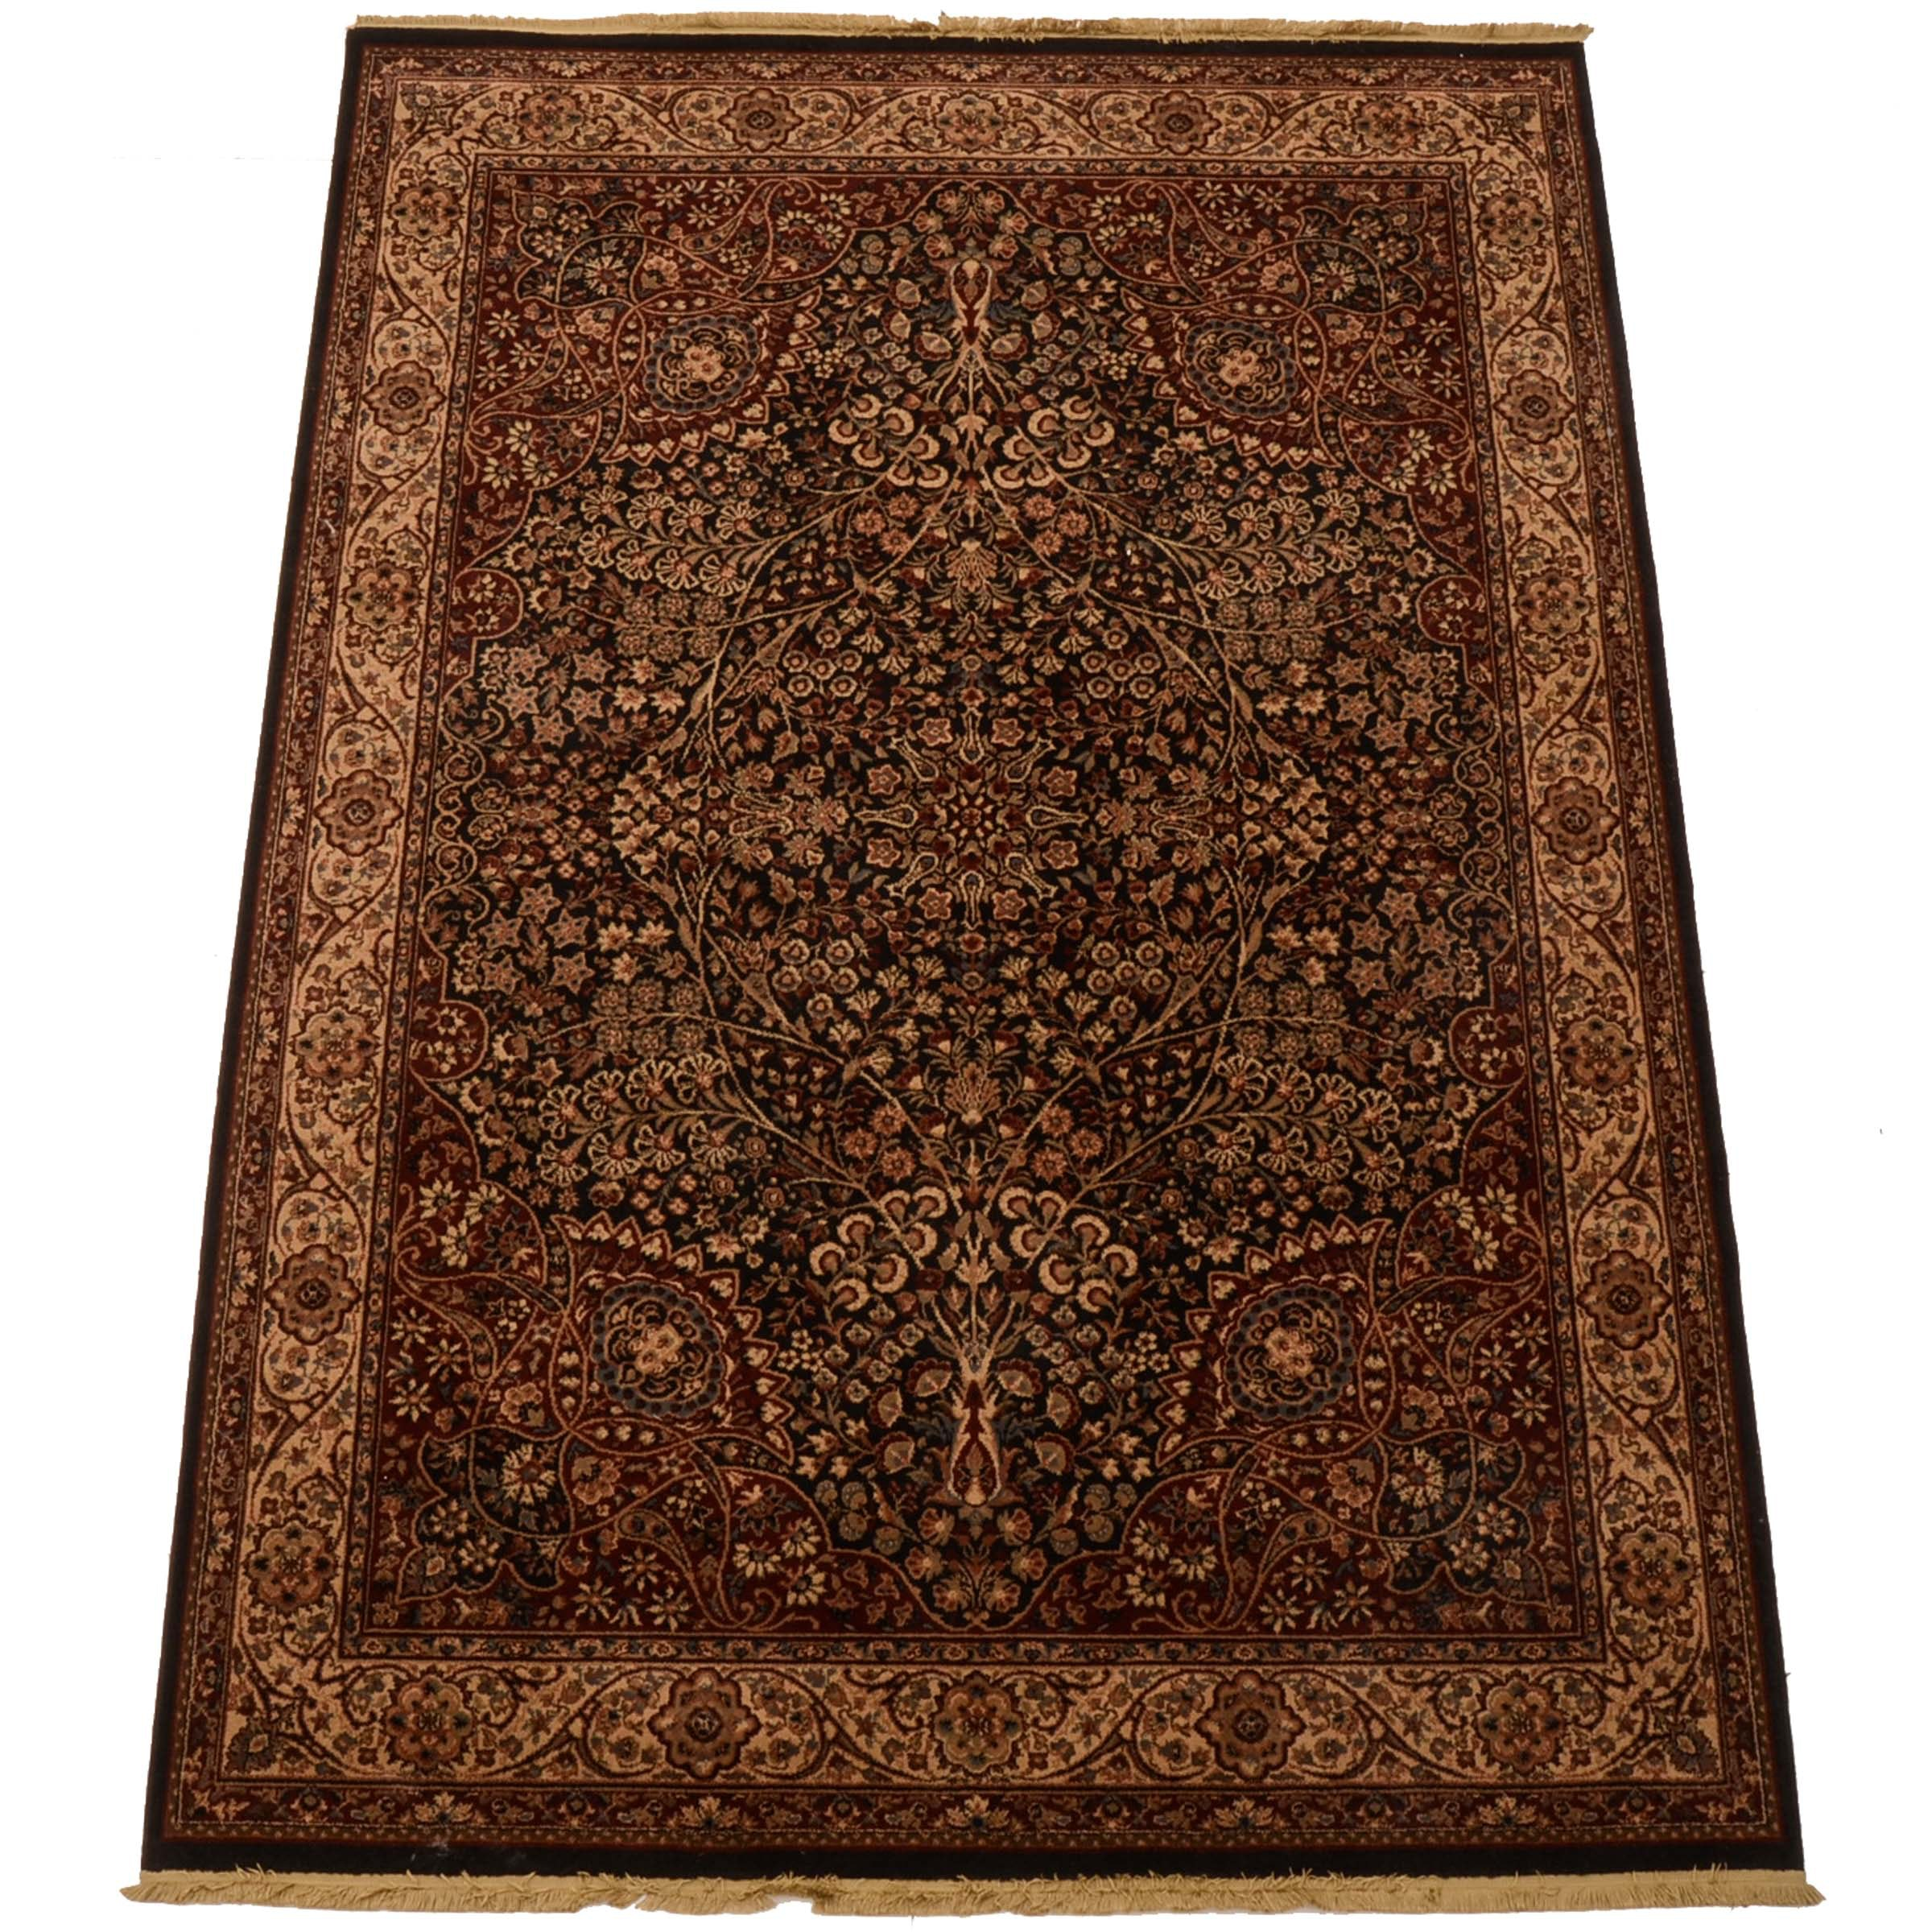 Power Loomed Persian-Inspired Area Rug